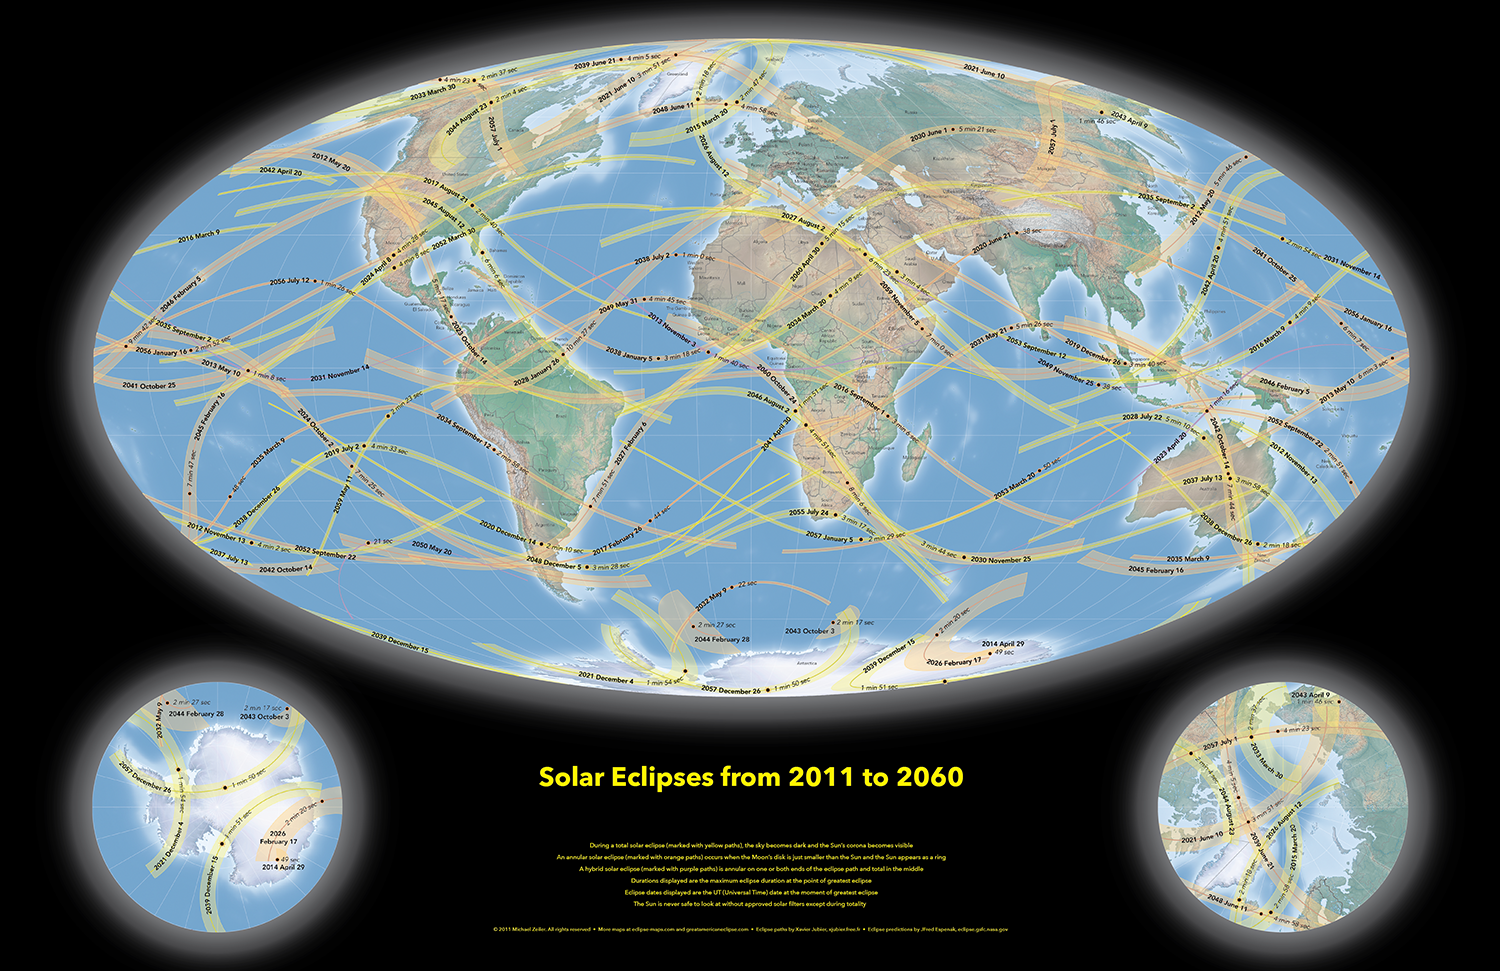 SolarEclipsesFrom2011to2060